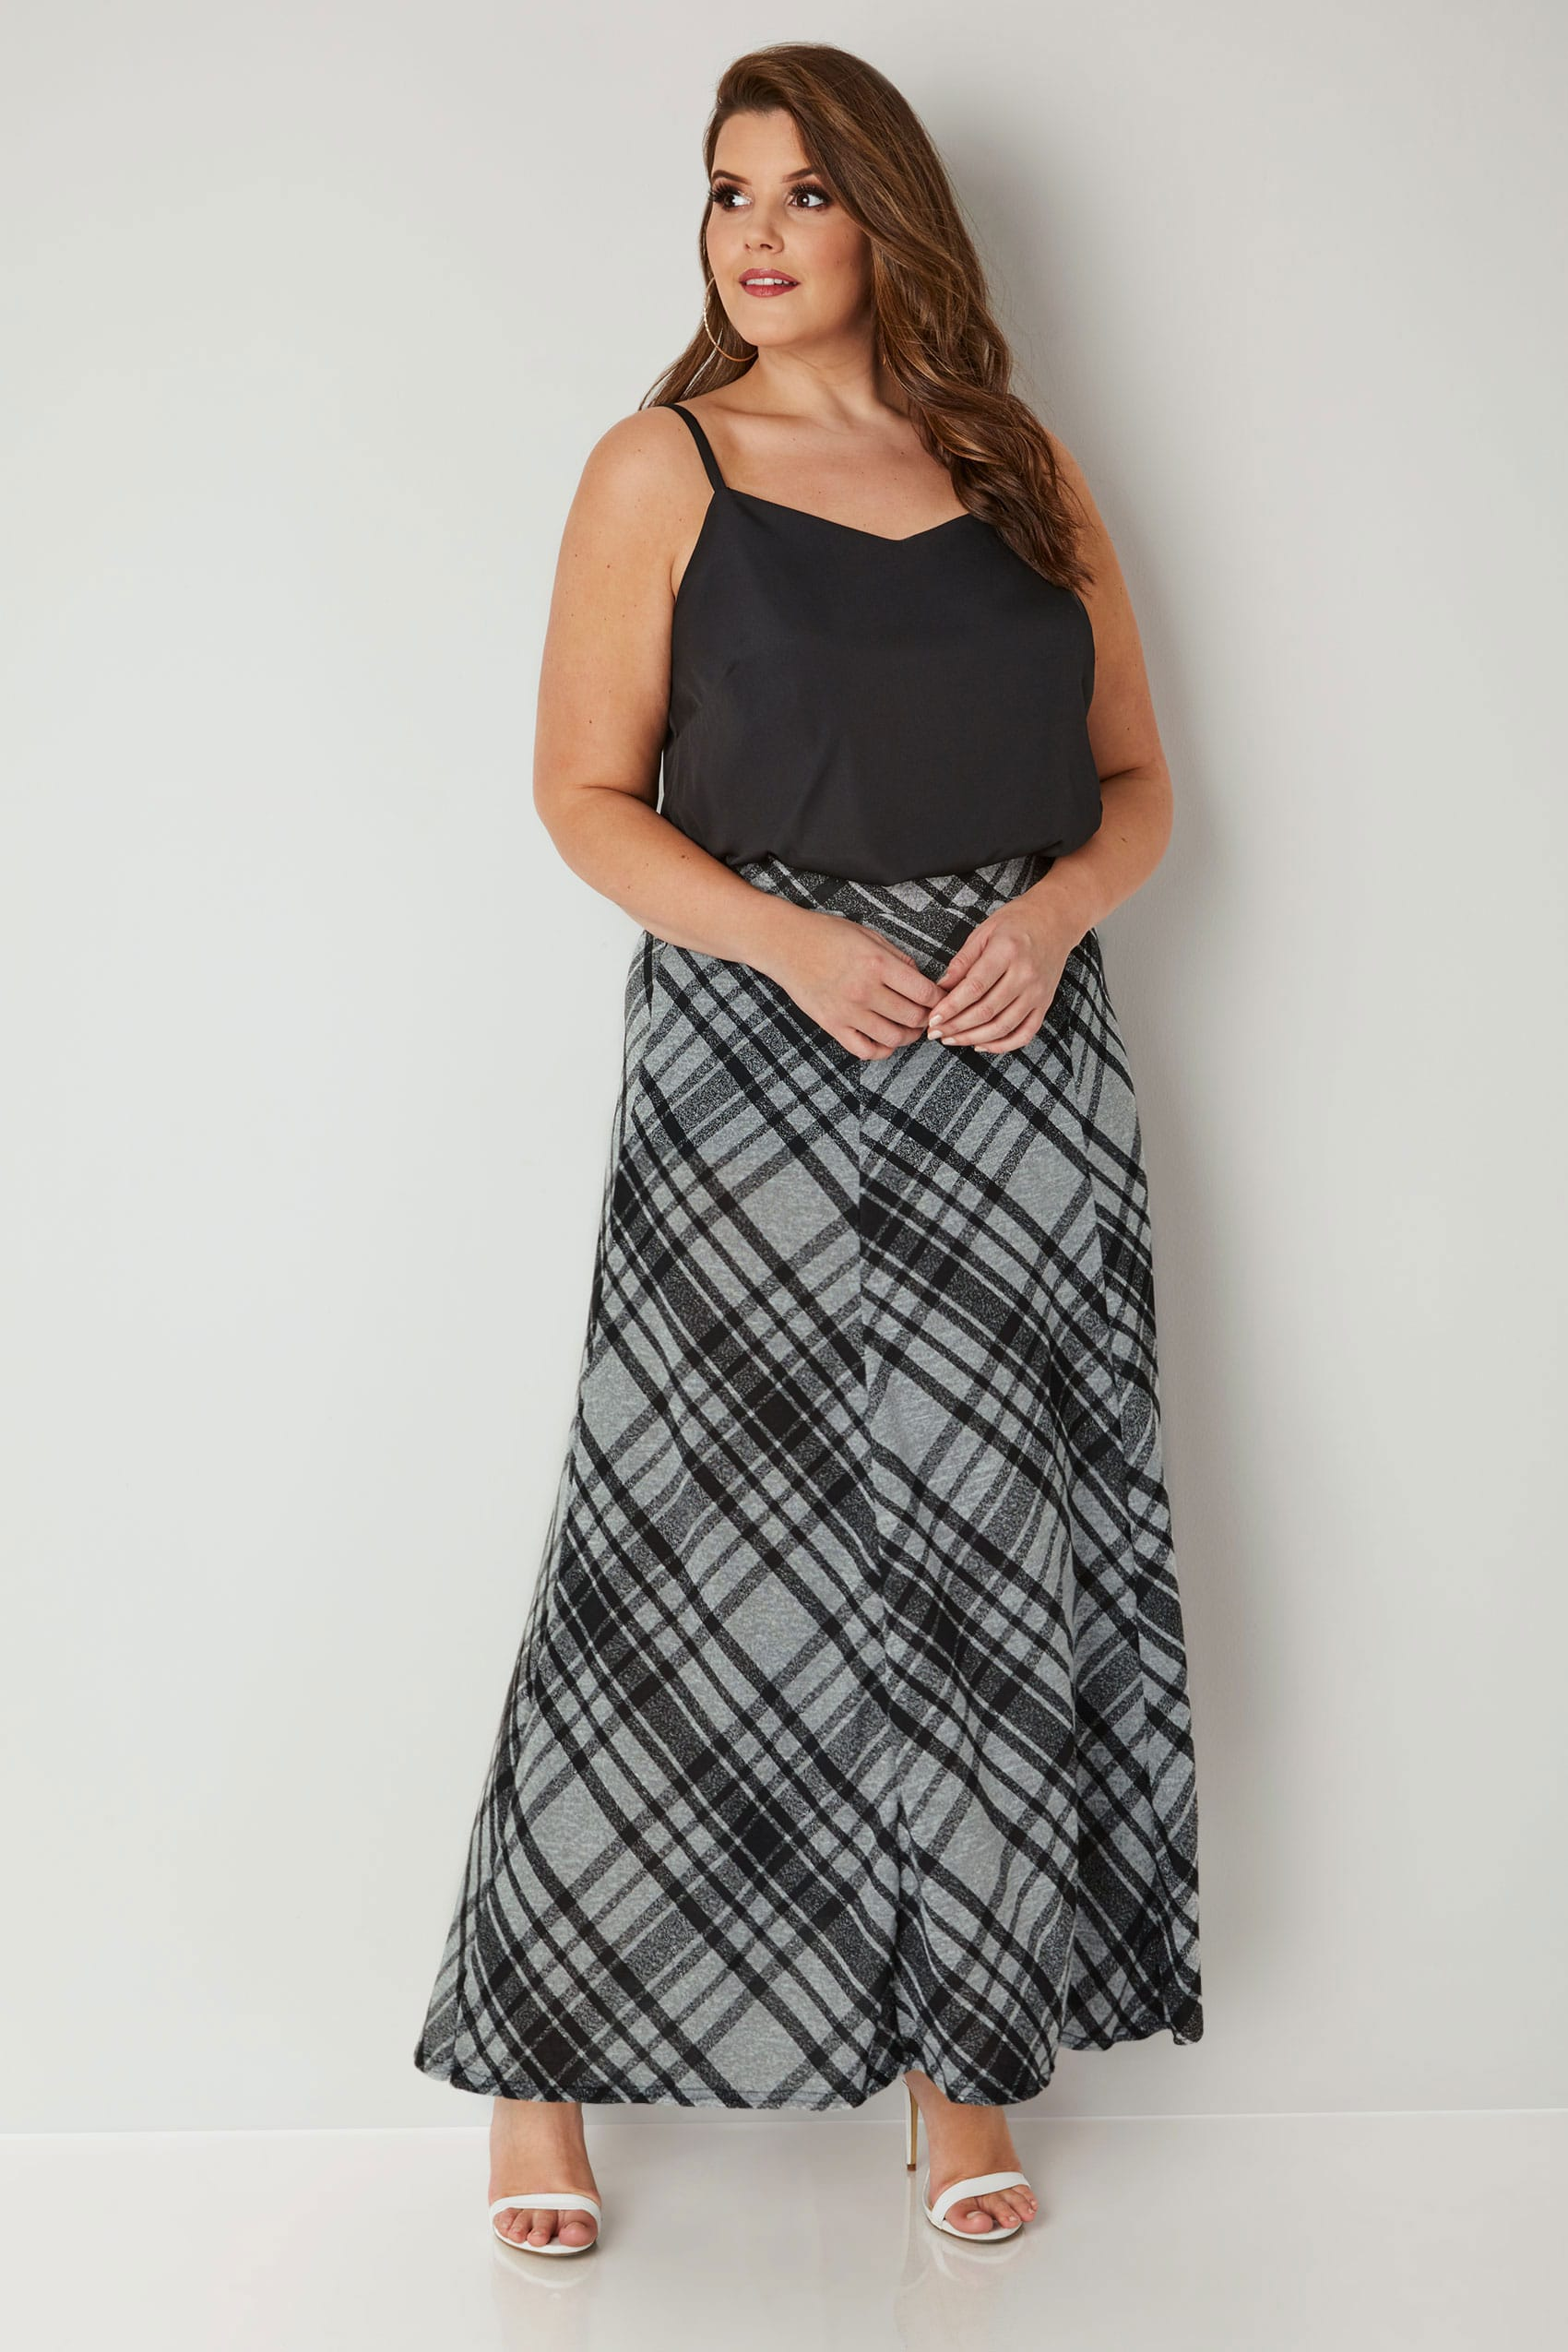 how to do a fade haircut on a white black amp grey checked maxi skirt plus size 16 to 36 4978